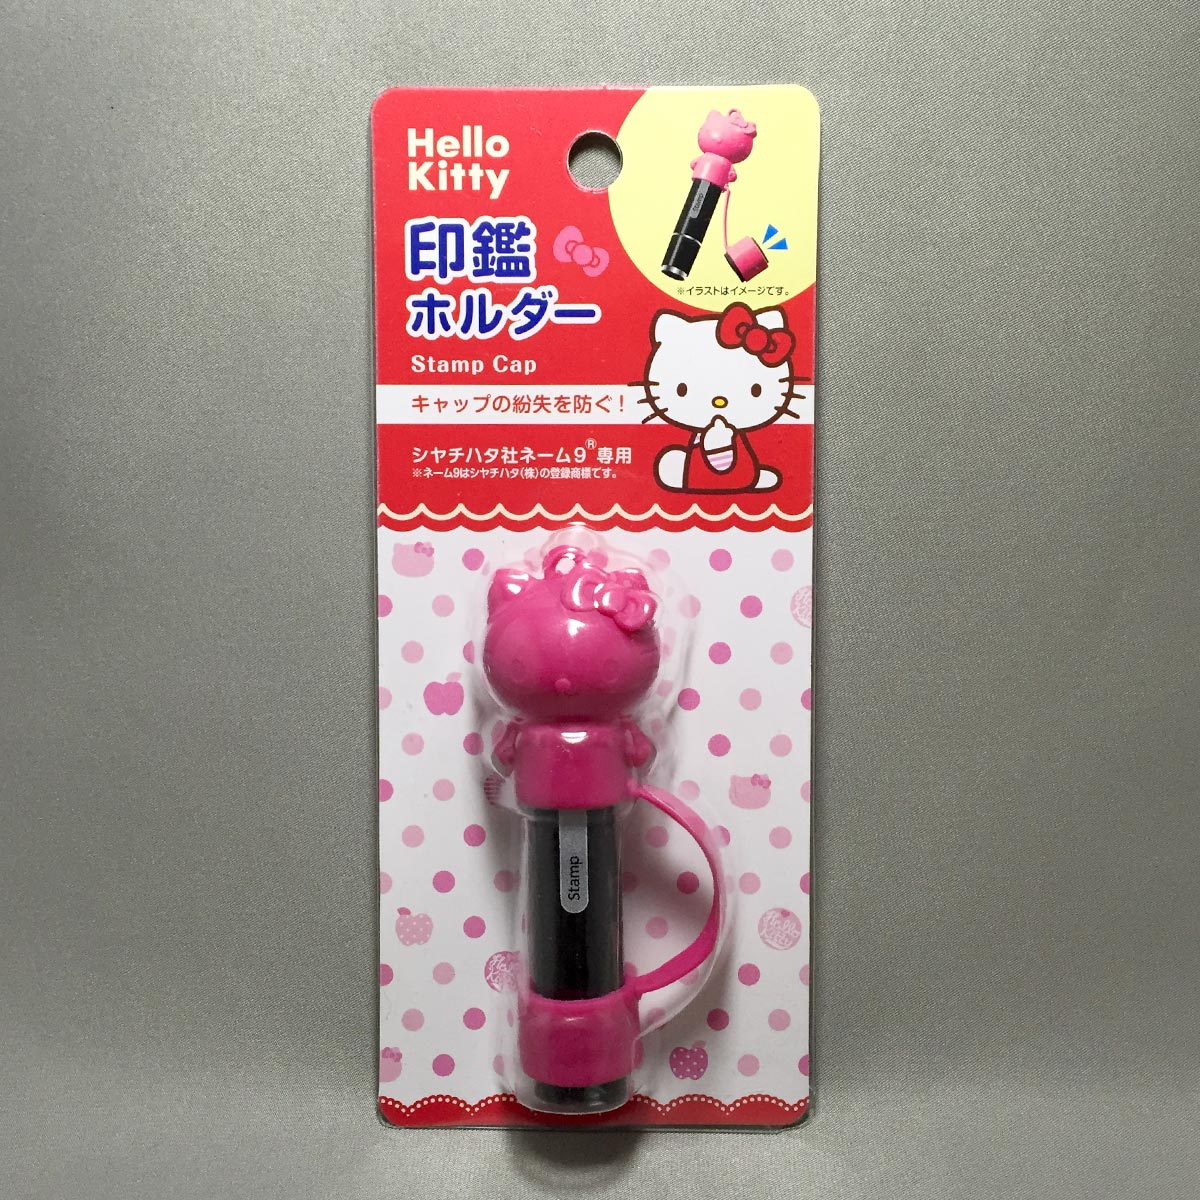 Hello Kitty Stamp Cap - Front packaging